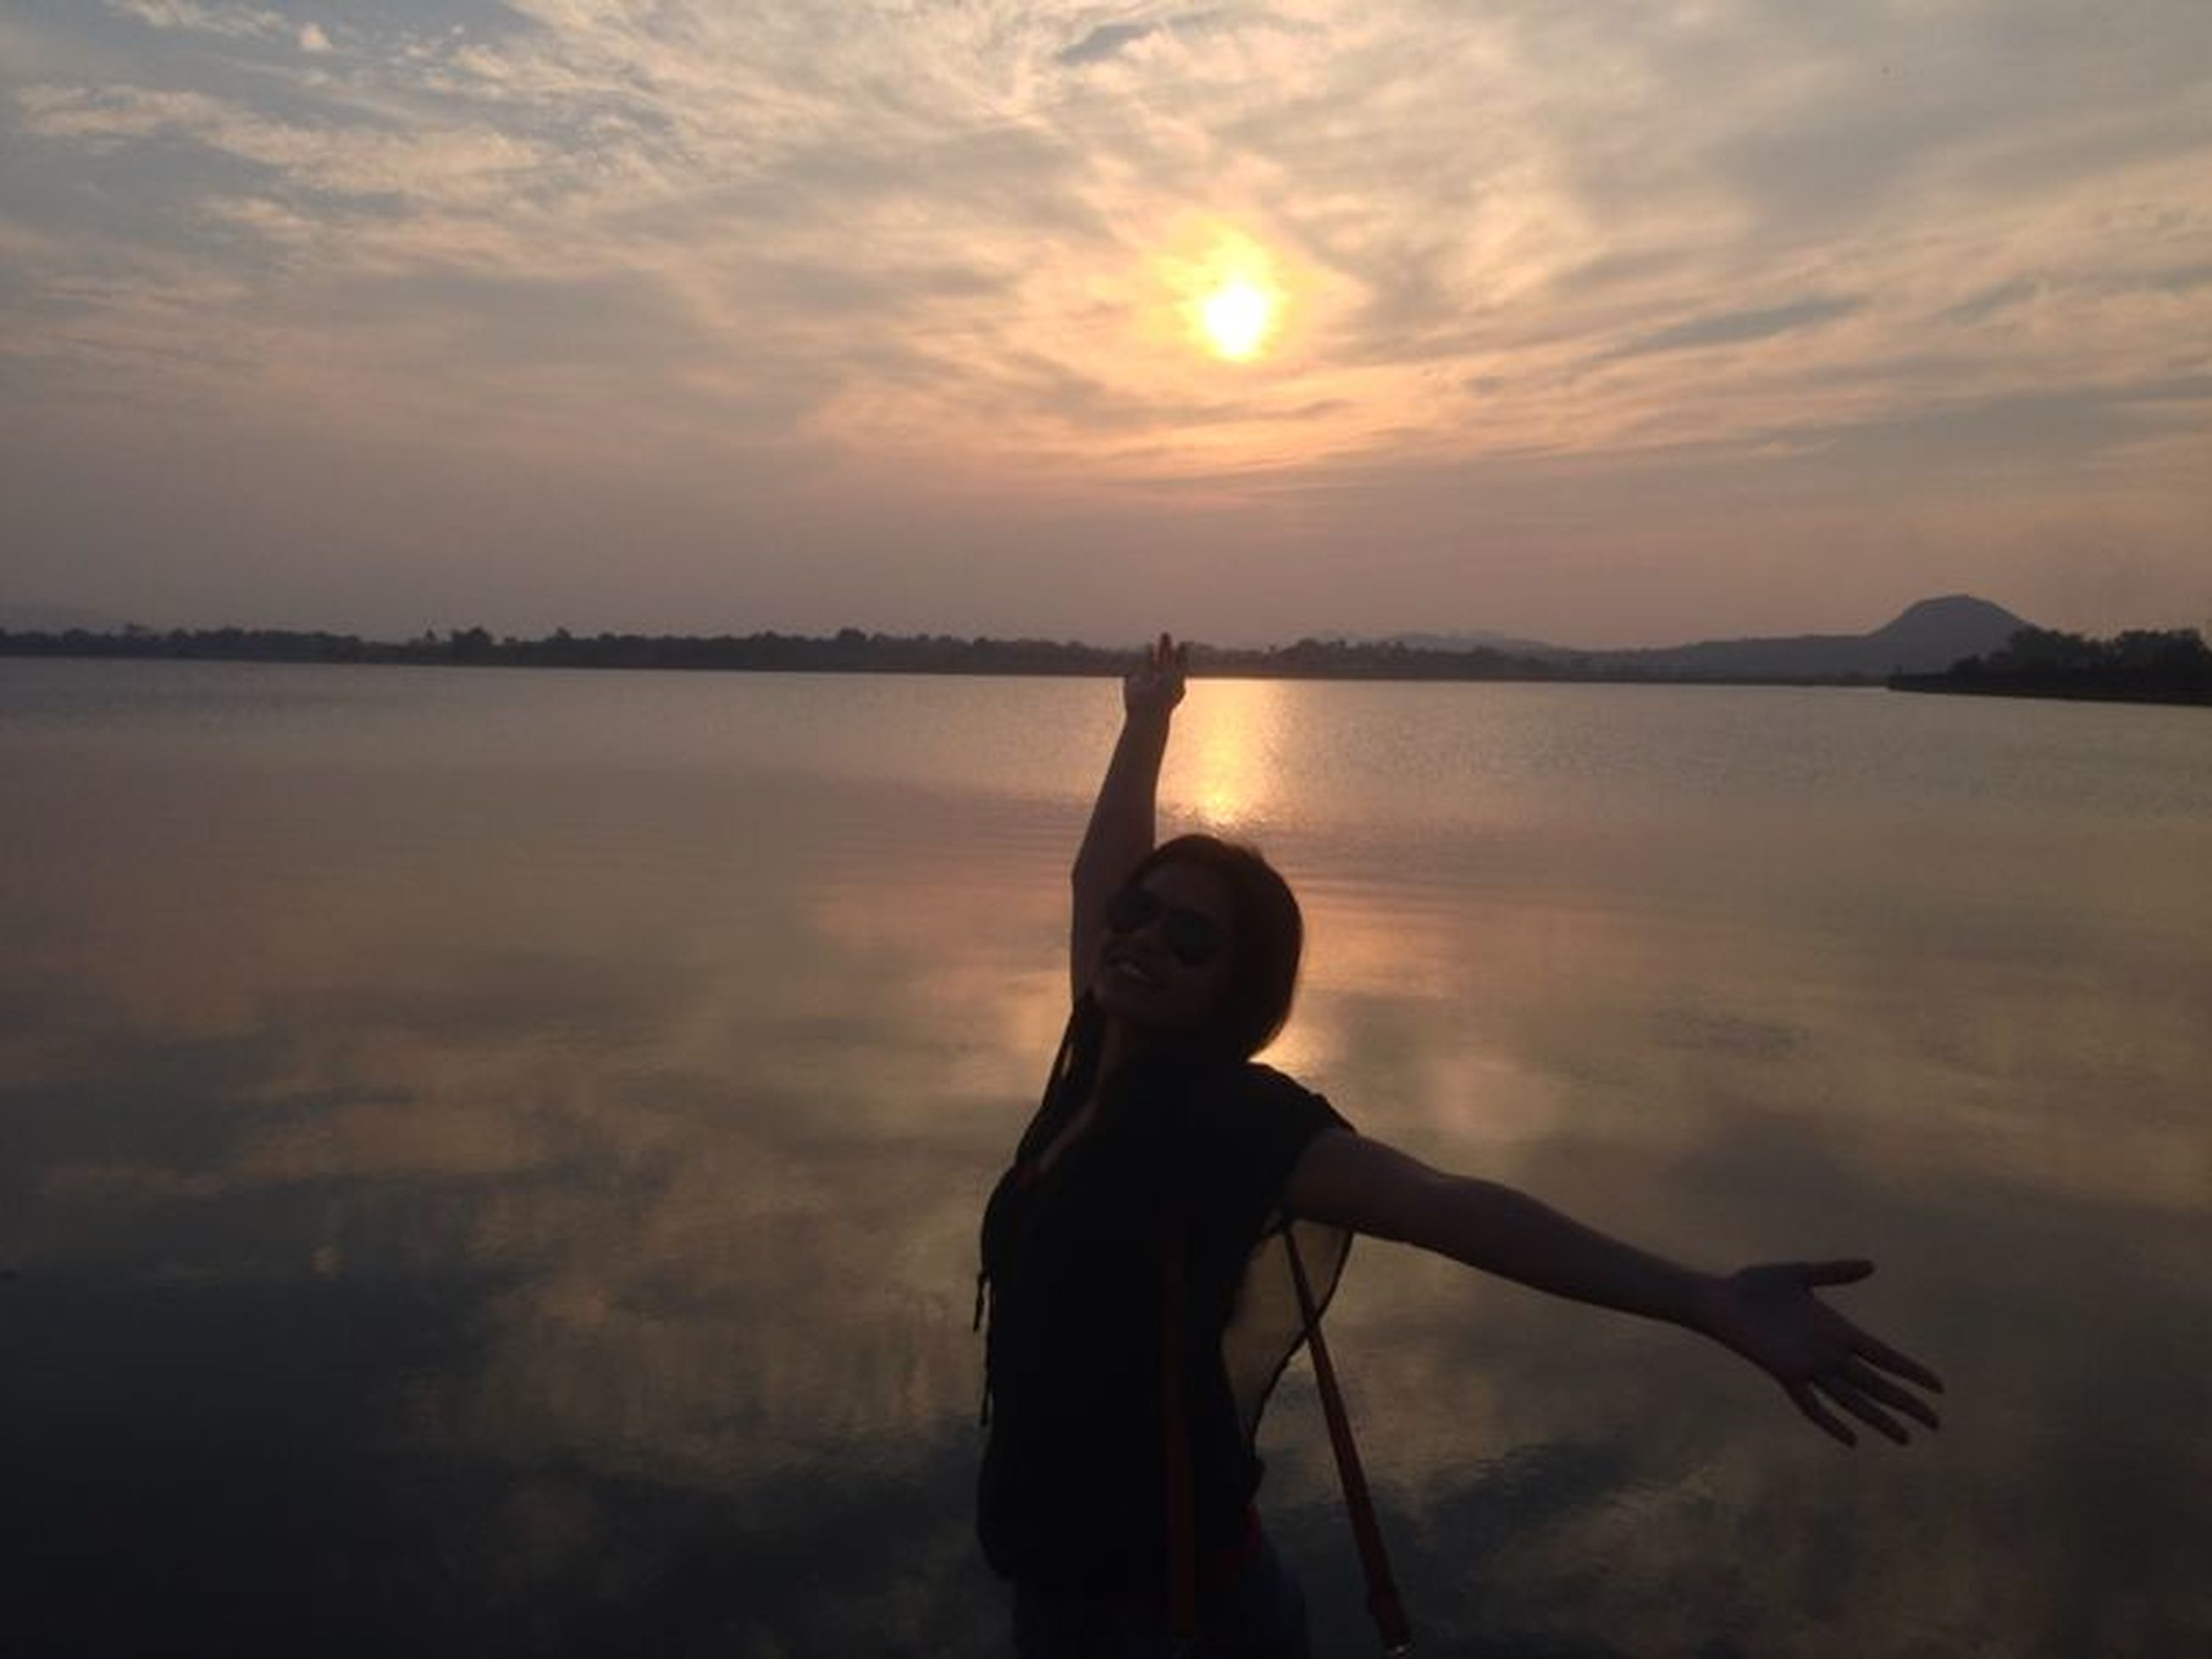 sunset, sky, water, silhouette, sun, sea, cloud - sky, standing, beauty in nature, scenics, cloud, reflection, lifestyles, tranquility, leisure activity, tranquil scene, nature, orange color